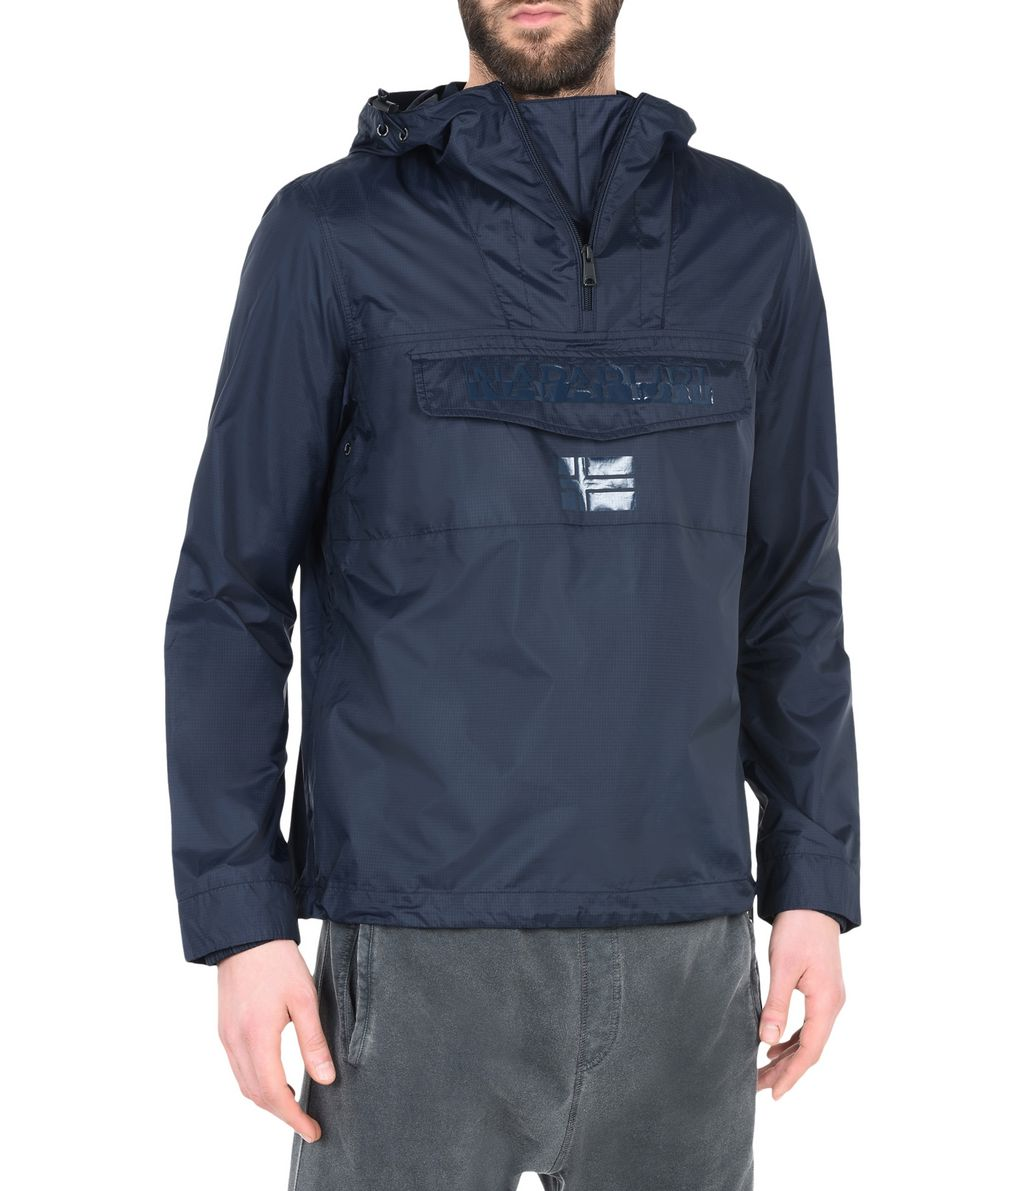 NAPAPIJRI ASHEVILLE MAN RAINFOREST,DARK BLUE